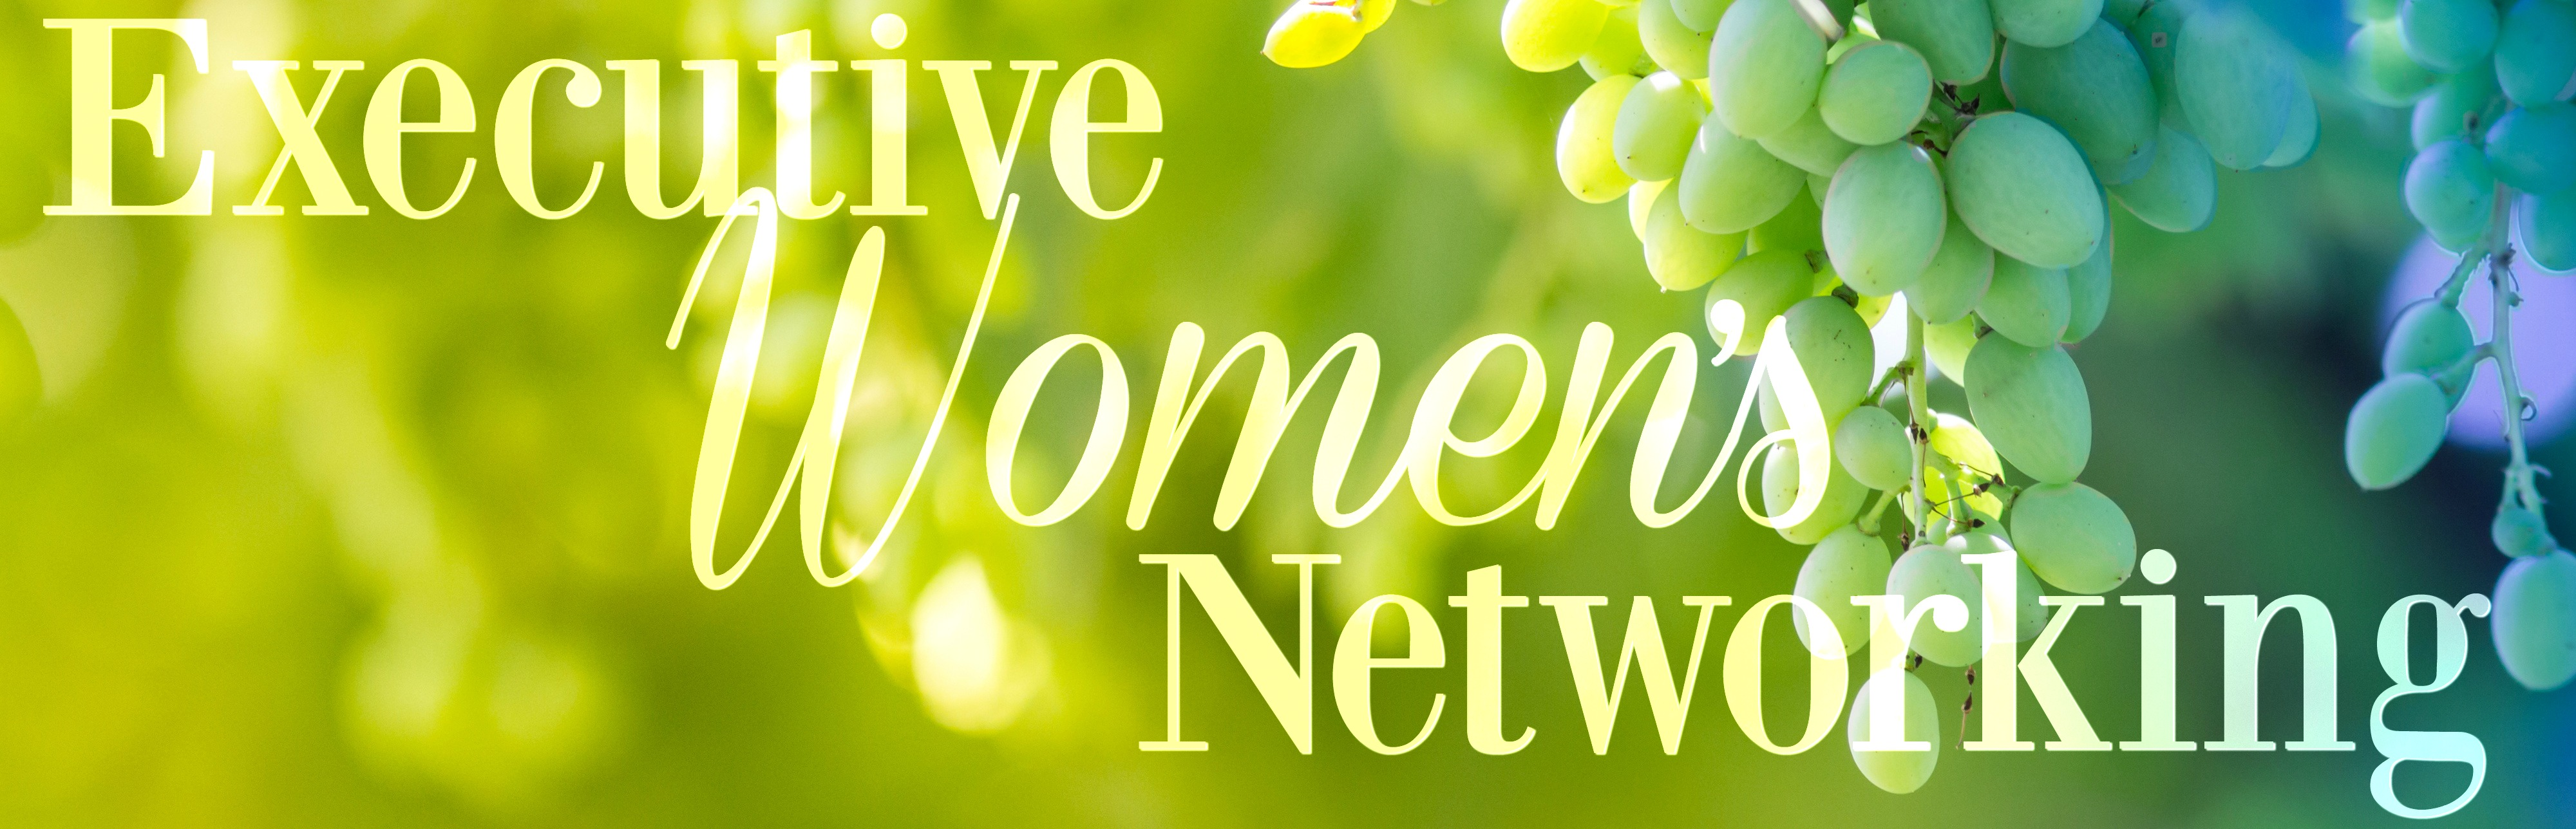 Executive Women's Networking